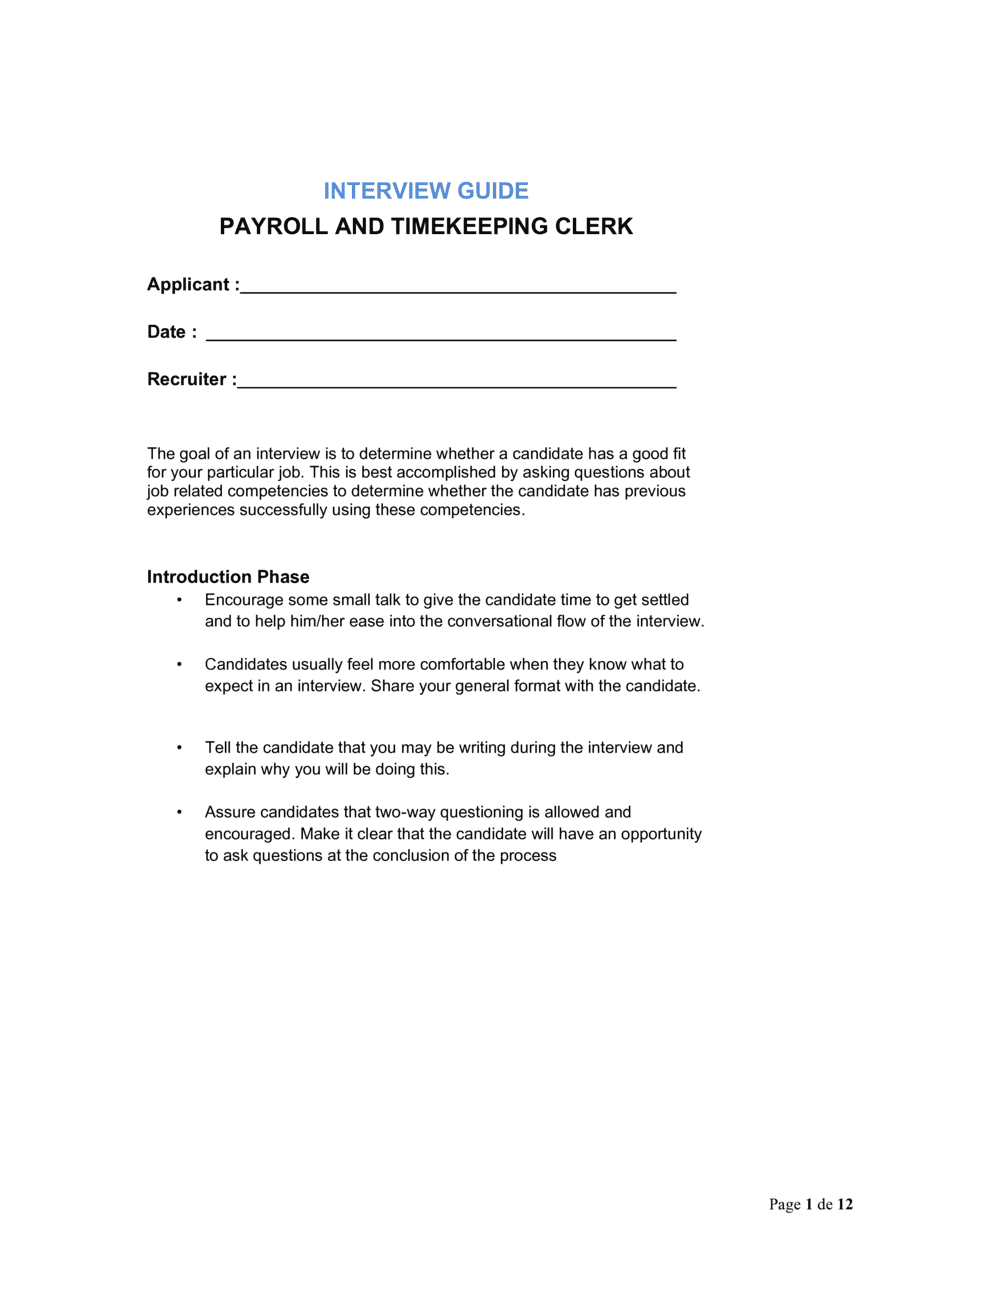 Business-in-a-Box's Interview Guide Payroll and Timekeeping Clerk Template